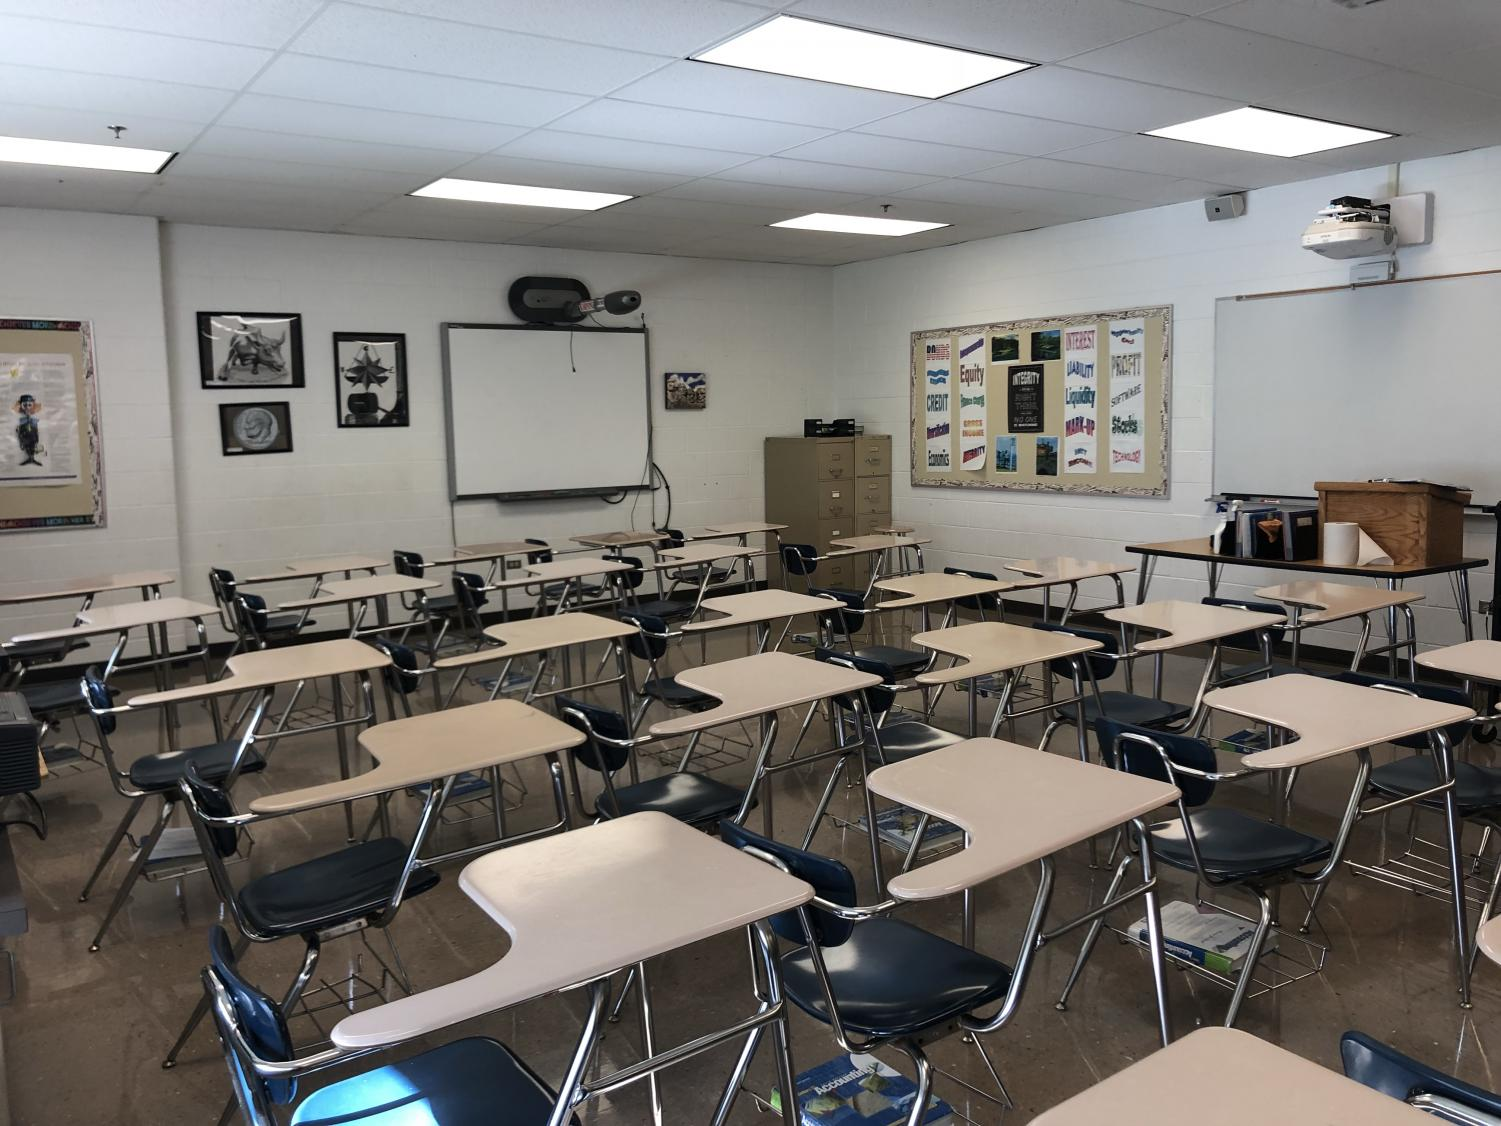 This is Mr. Hollatz's classroom, where Technology Concepts will be taught.